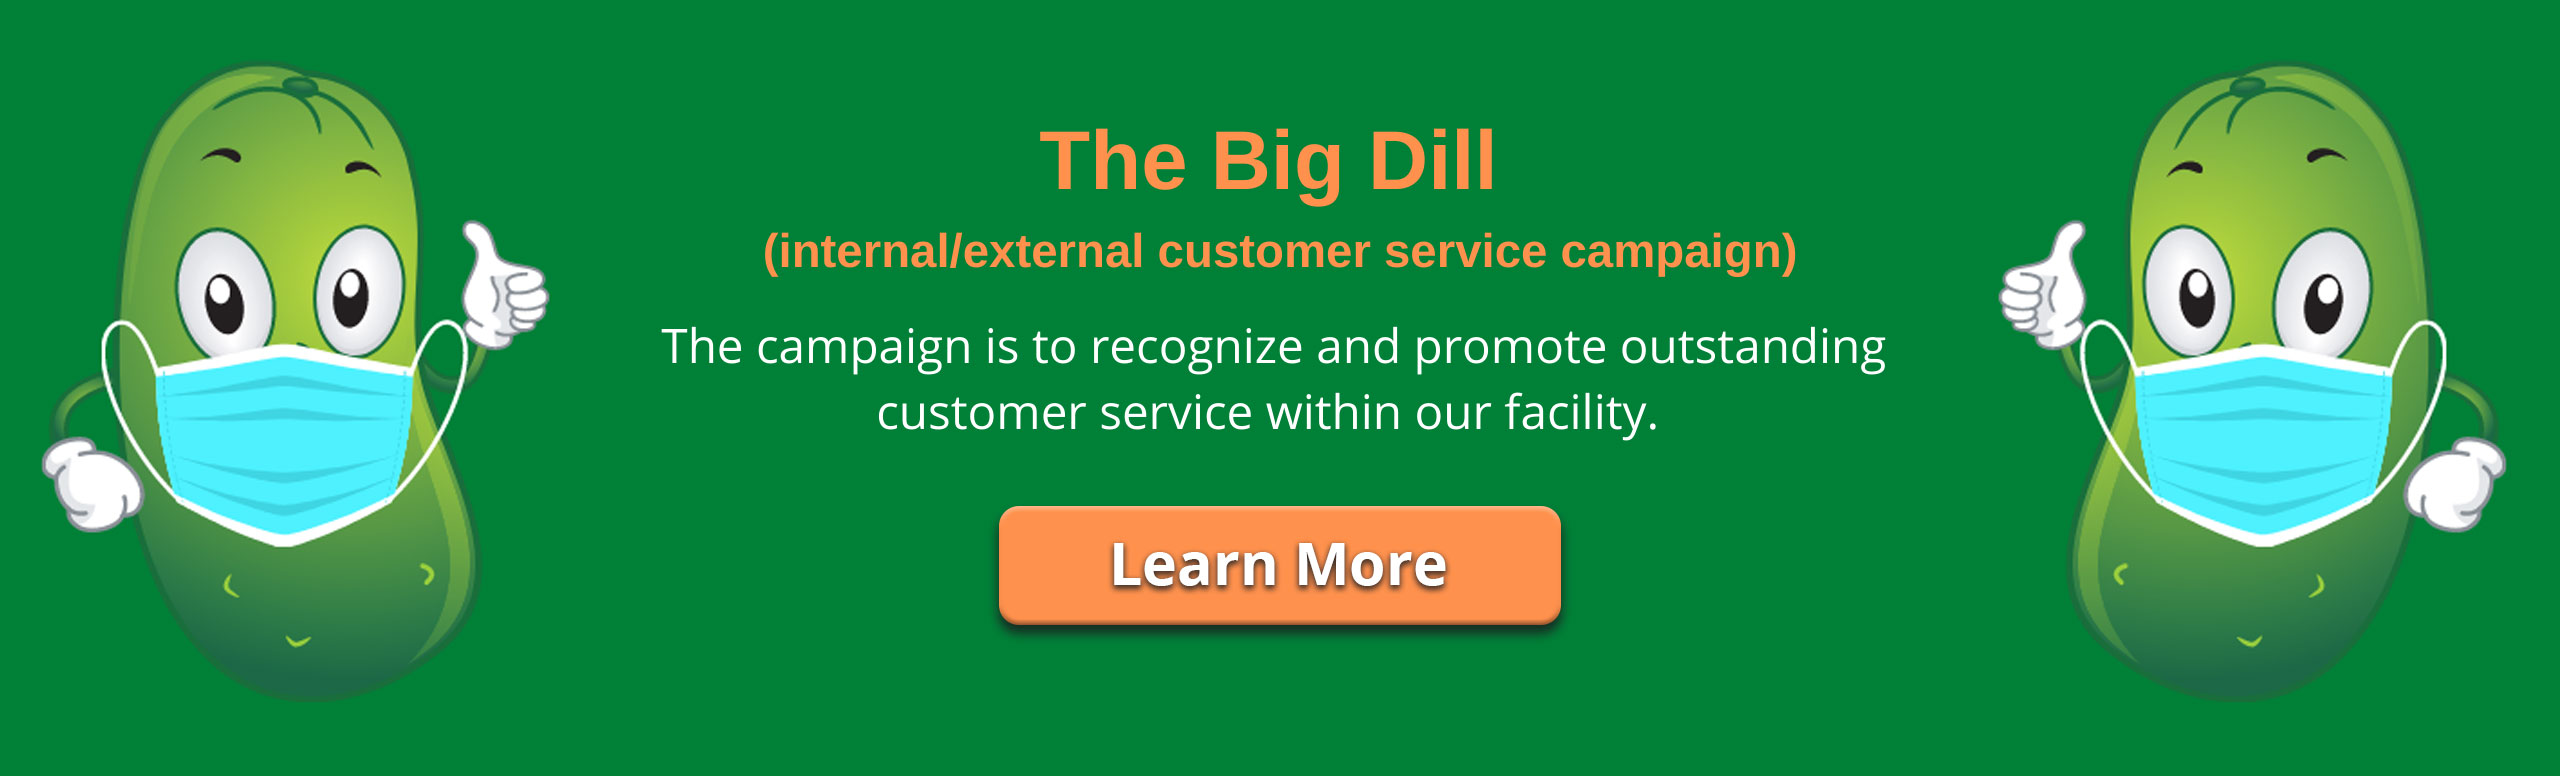 Banner picture of two large dill pickle cartons with eyebrows, eyes, wearing a mask, and wearing gloves while giving a thumbs up  Banner says: The Big Dill (internal/external customer service campaign)  The campaign is to recognize and promote outstanding customer service within our facility.  Link icon that says: Learn More